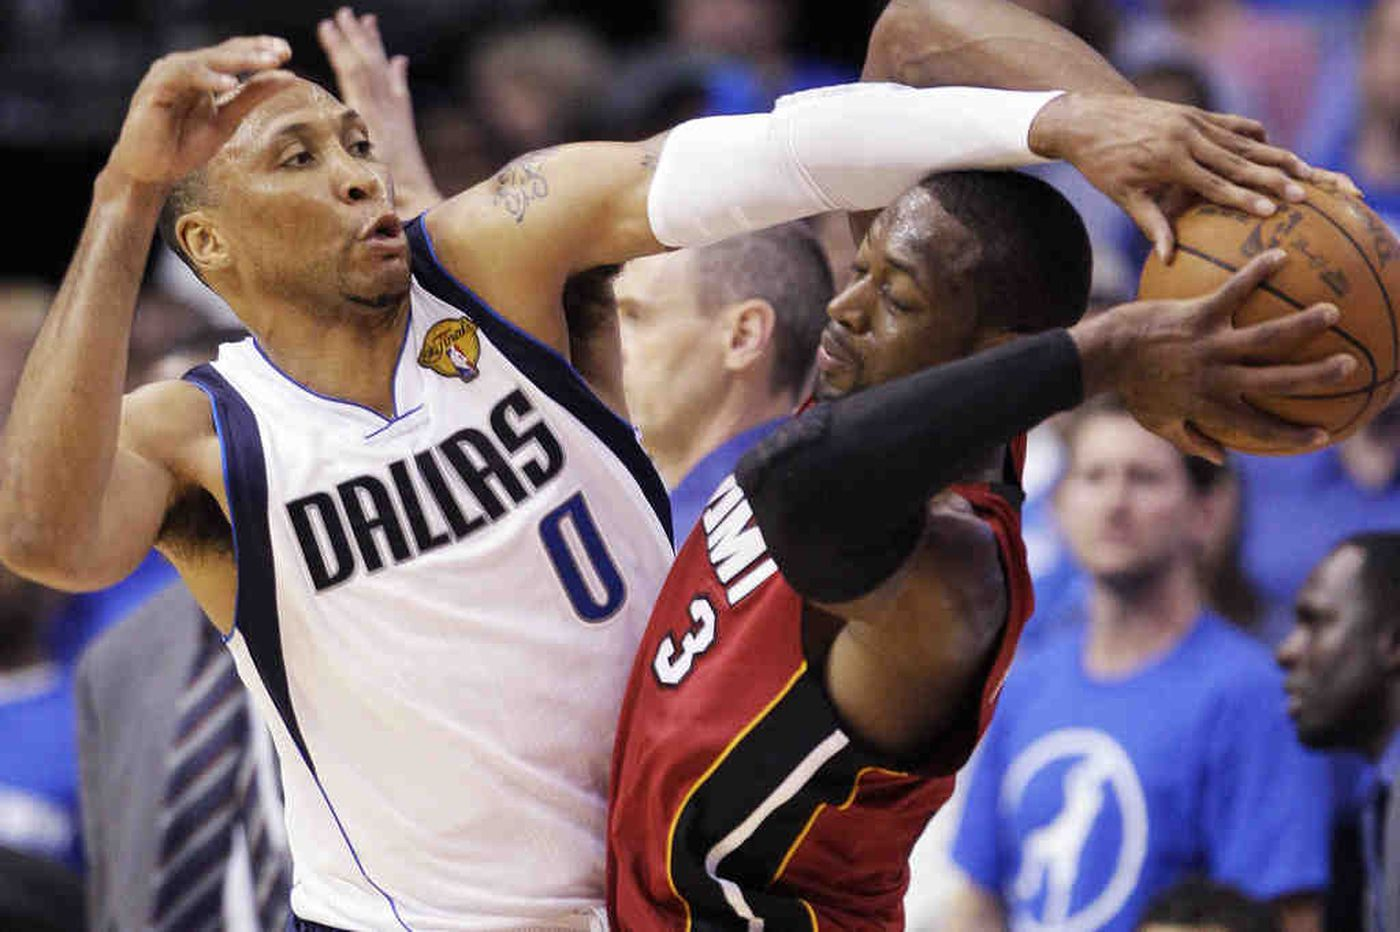 Fever pitch: Nowitzki does it again for Mavs